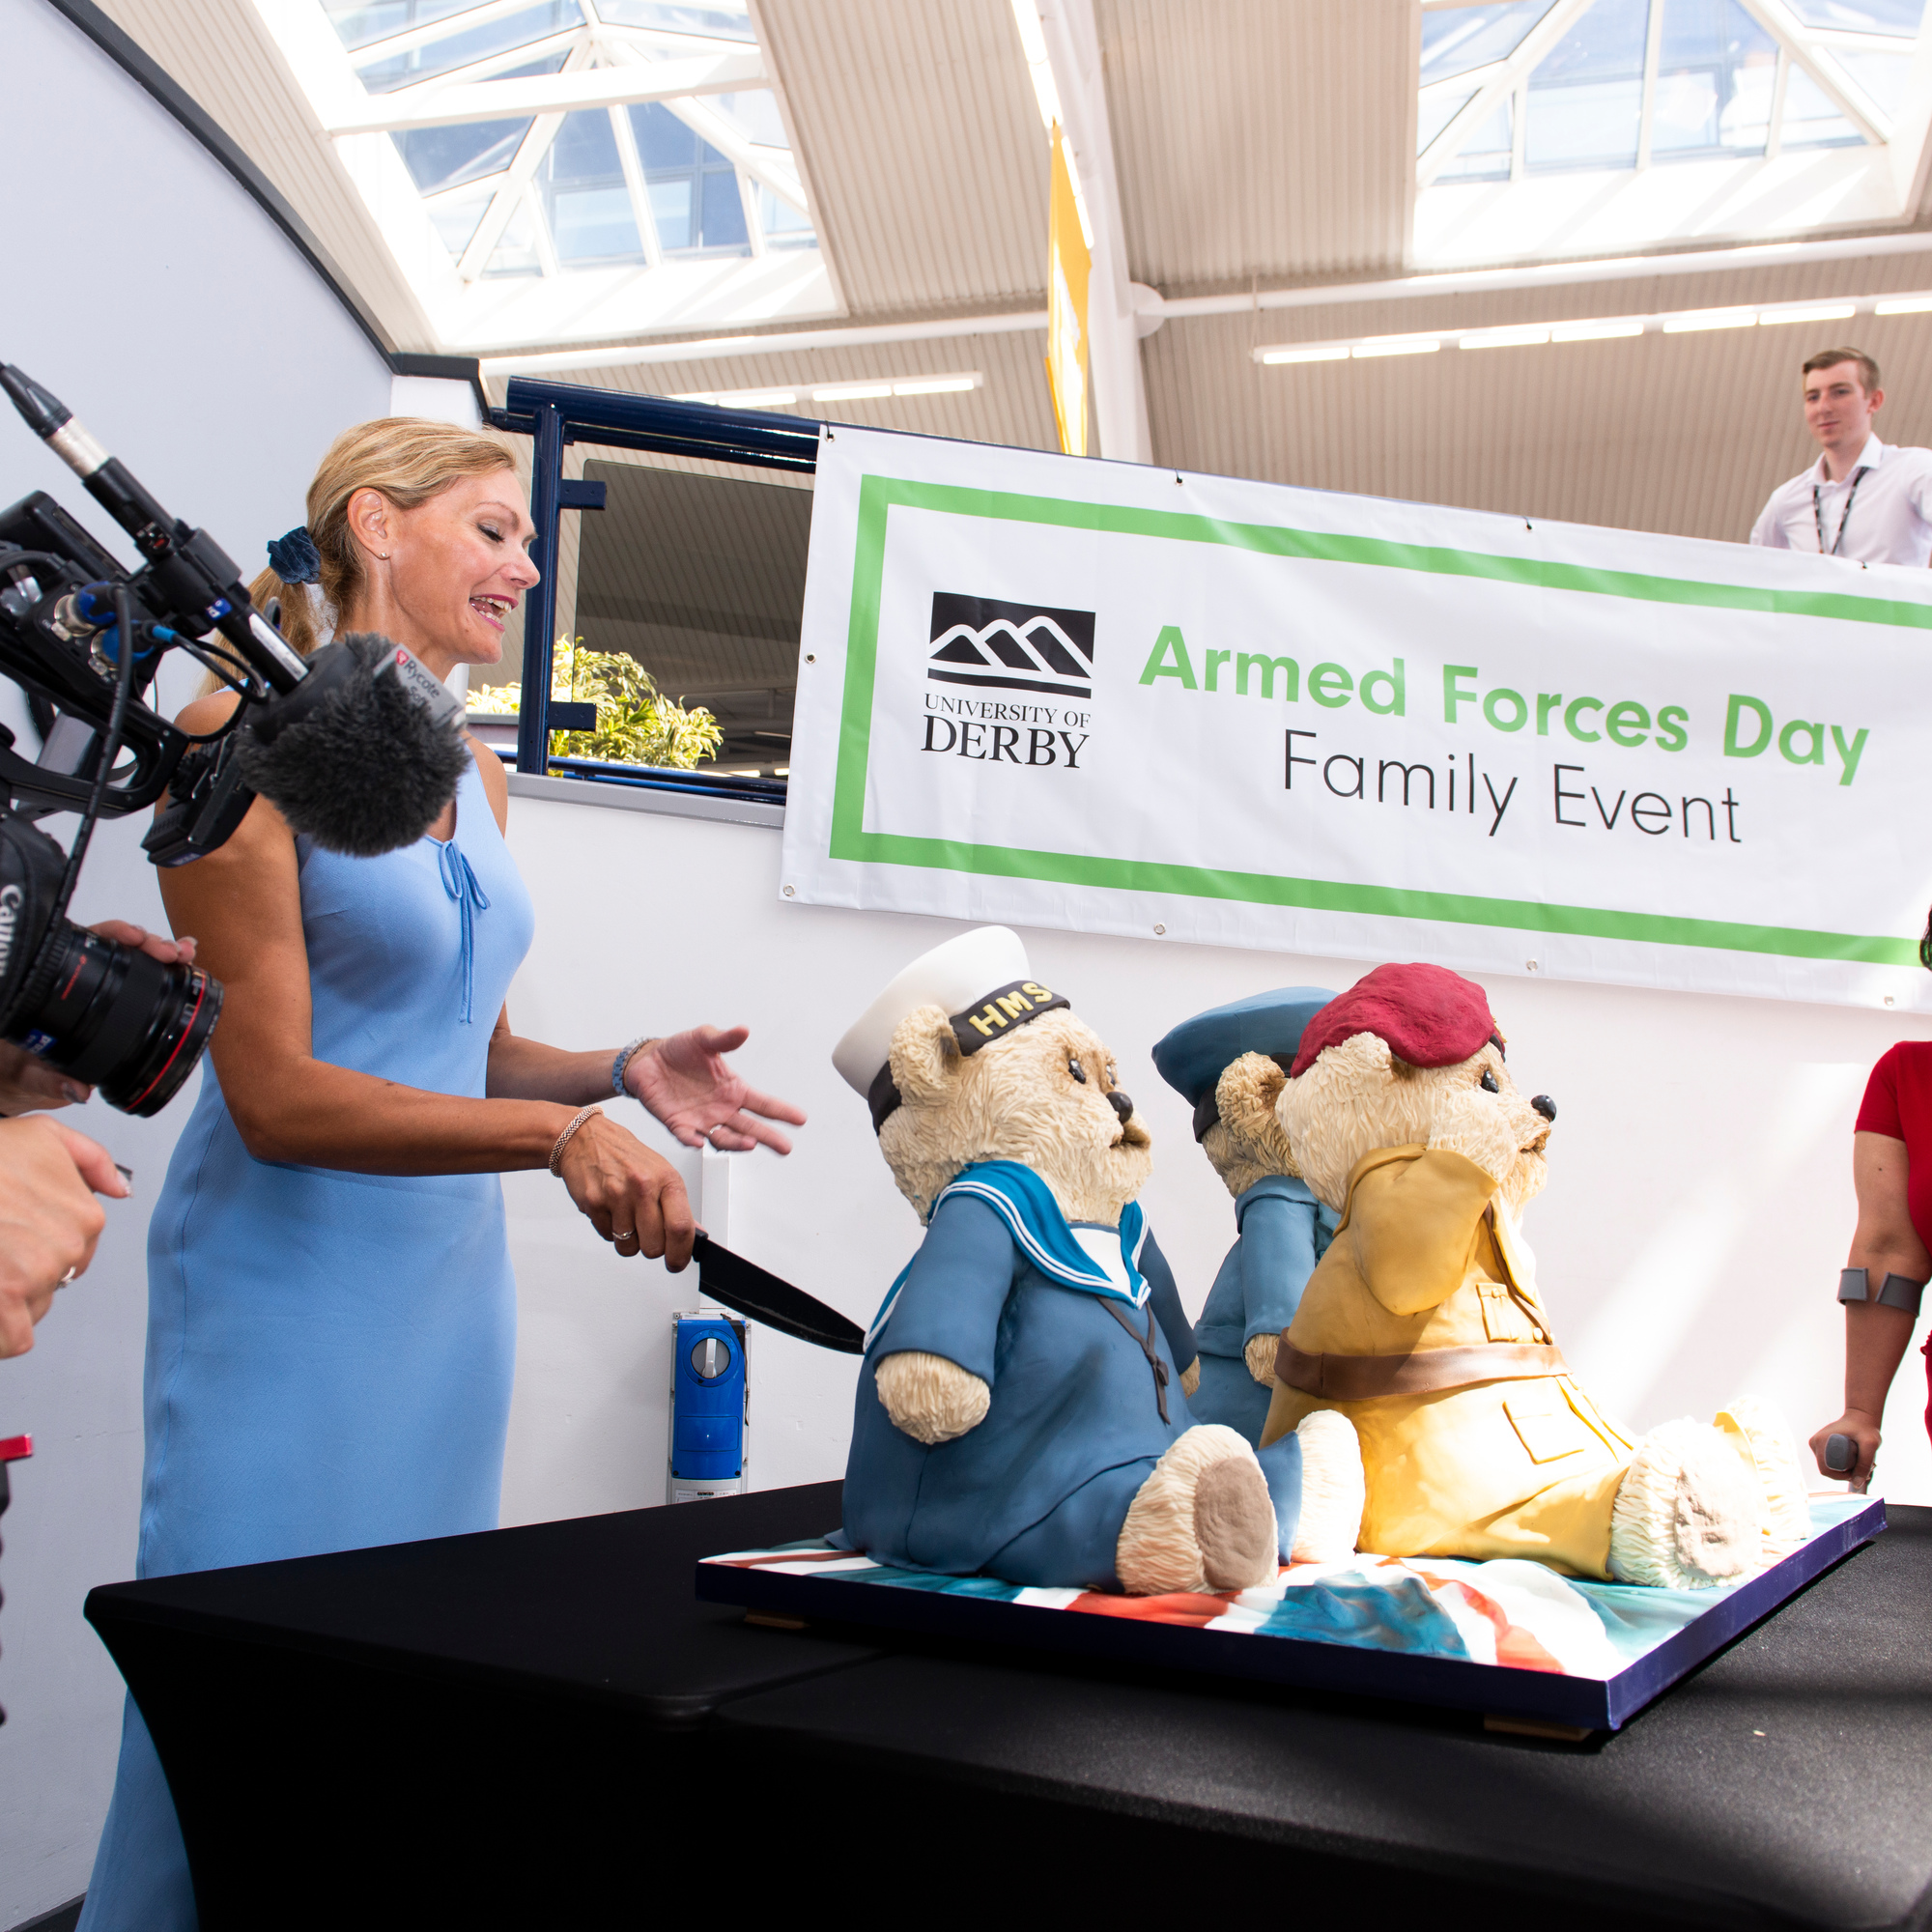 Paula Holt talking in from of a crowd on armed forces day.